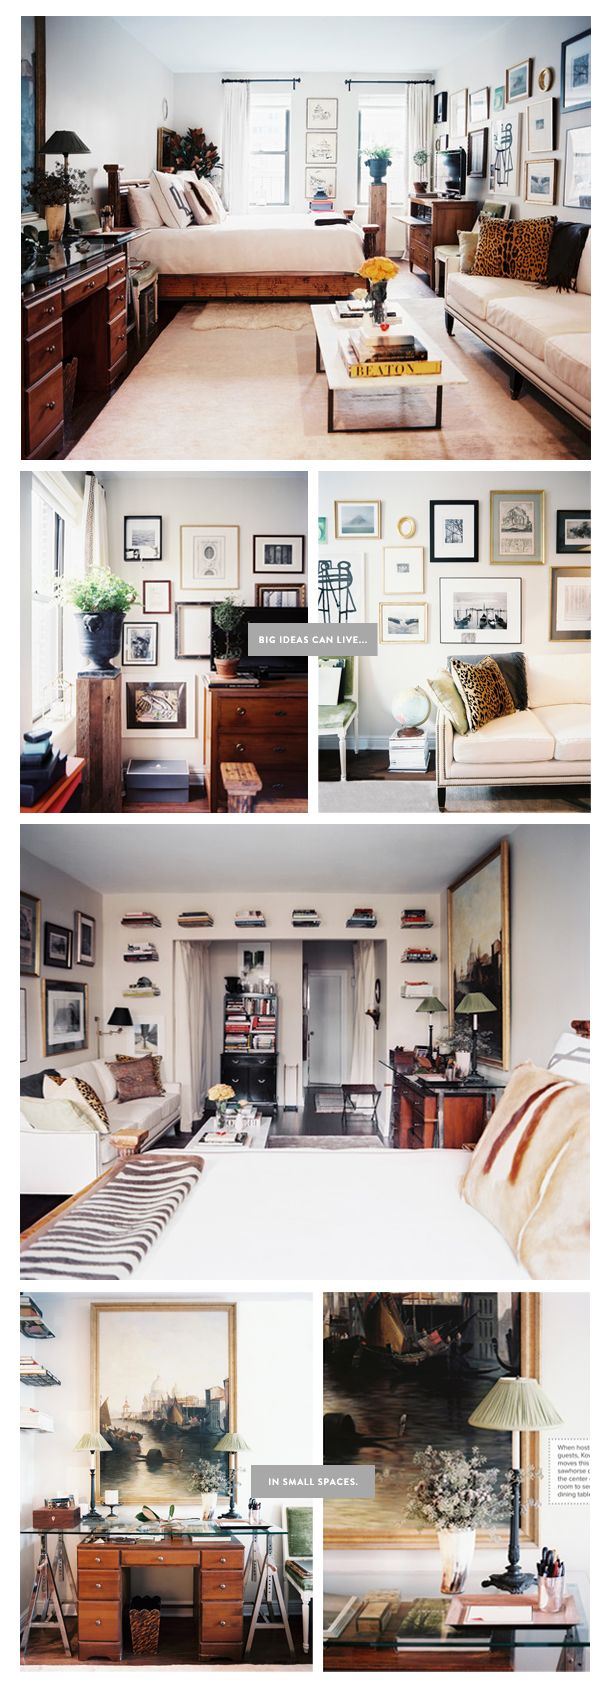 A studio in Manhattan. If only I had known how to decorate when I lived in my studio. Life could have been so much more stylish.